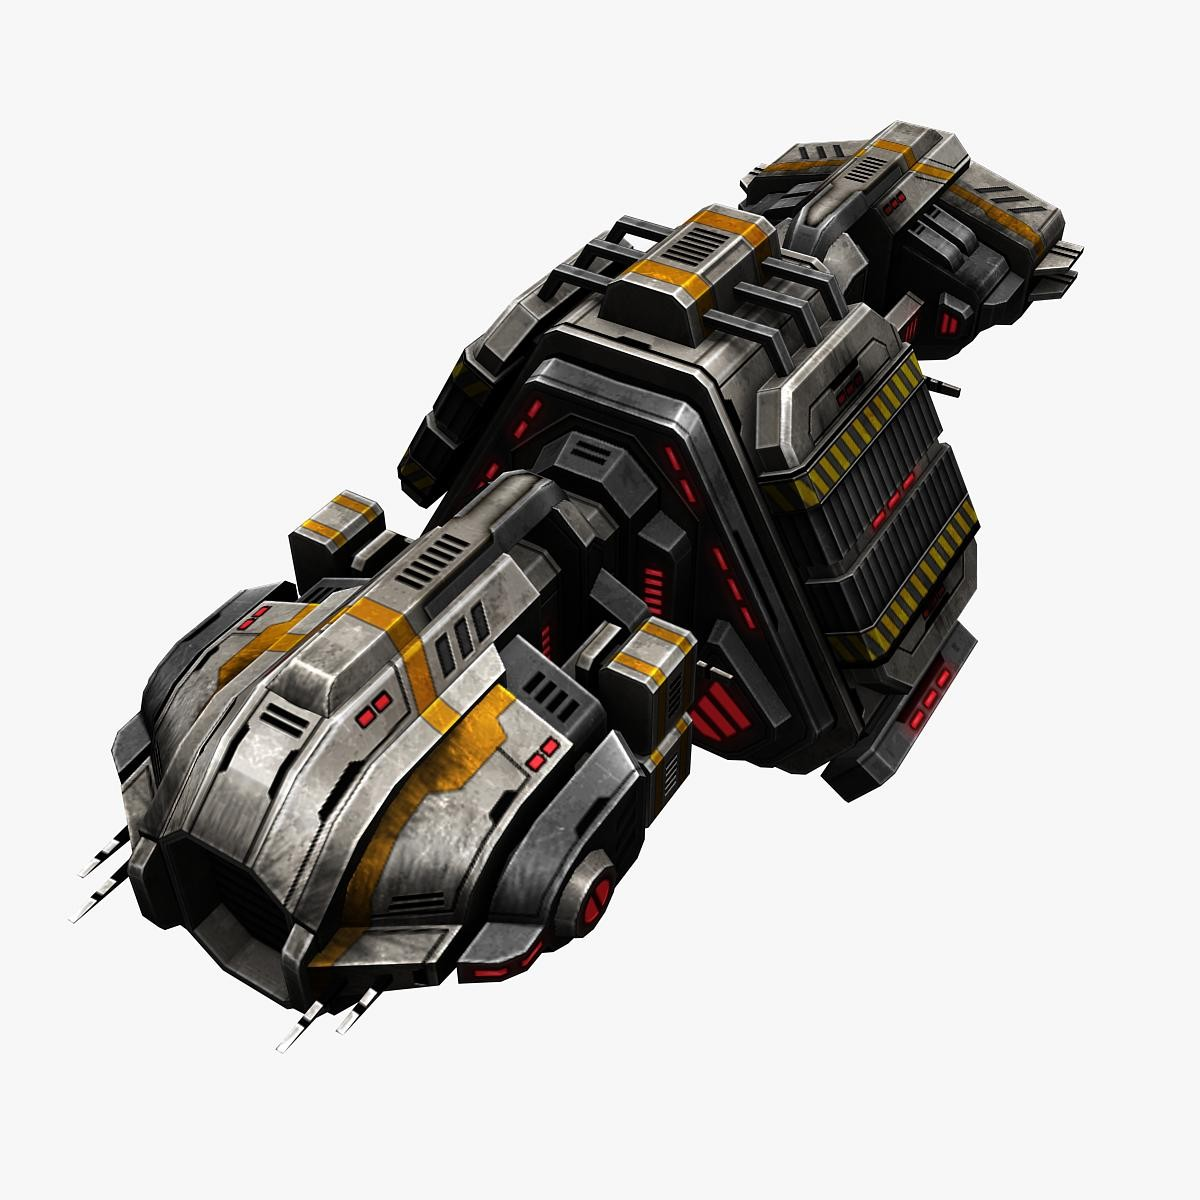 transport_space_ship_3_preview_0.jpg